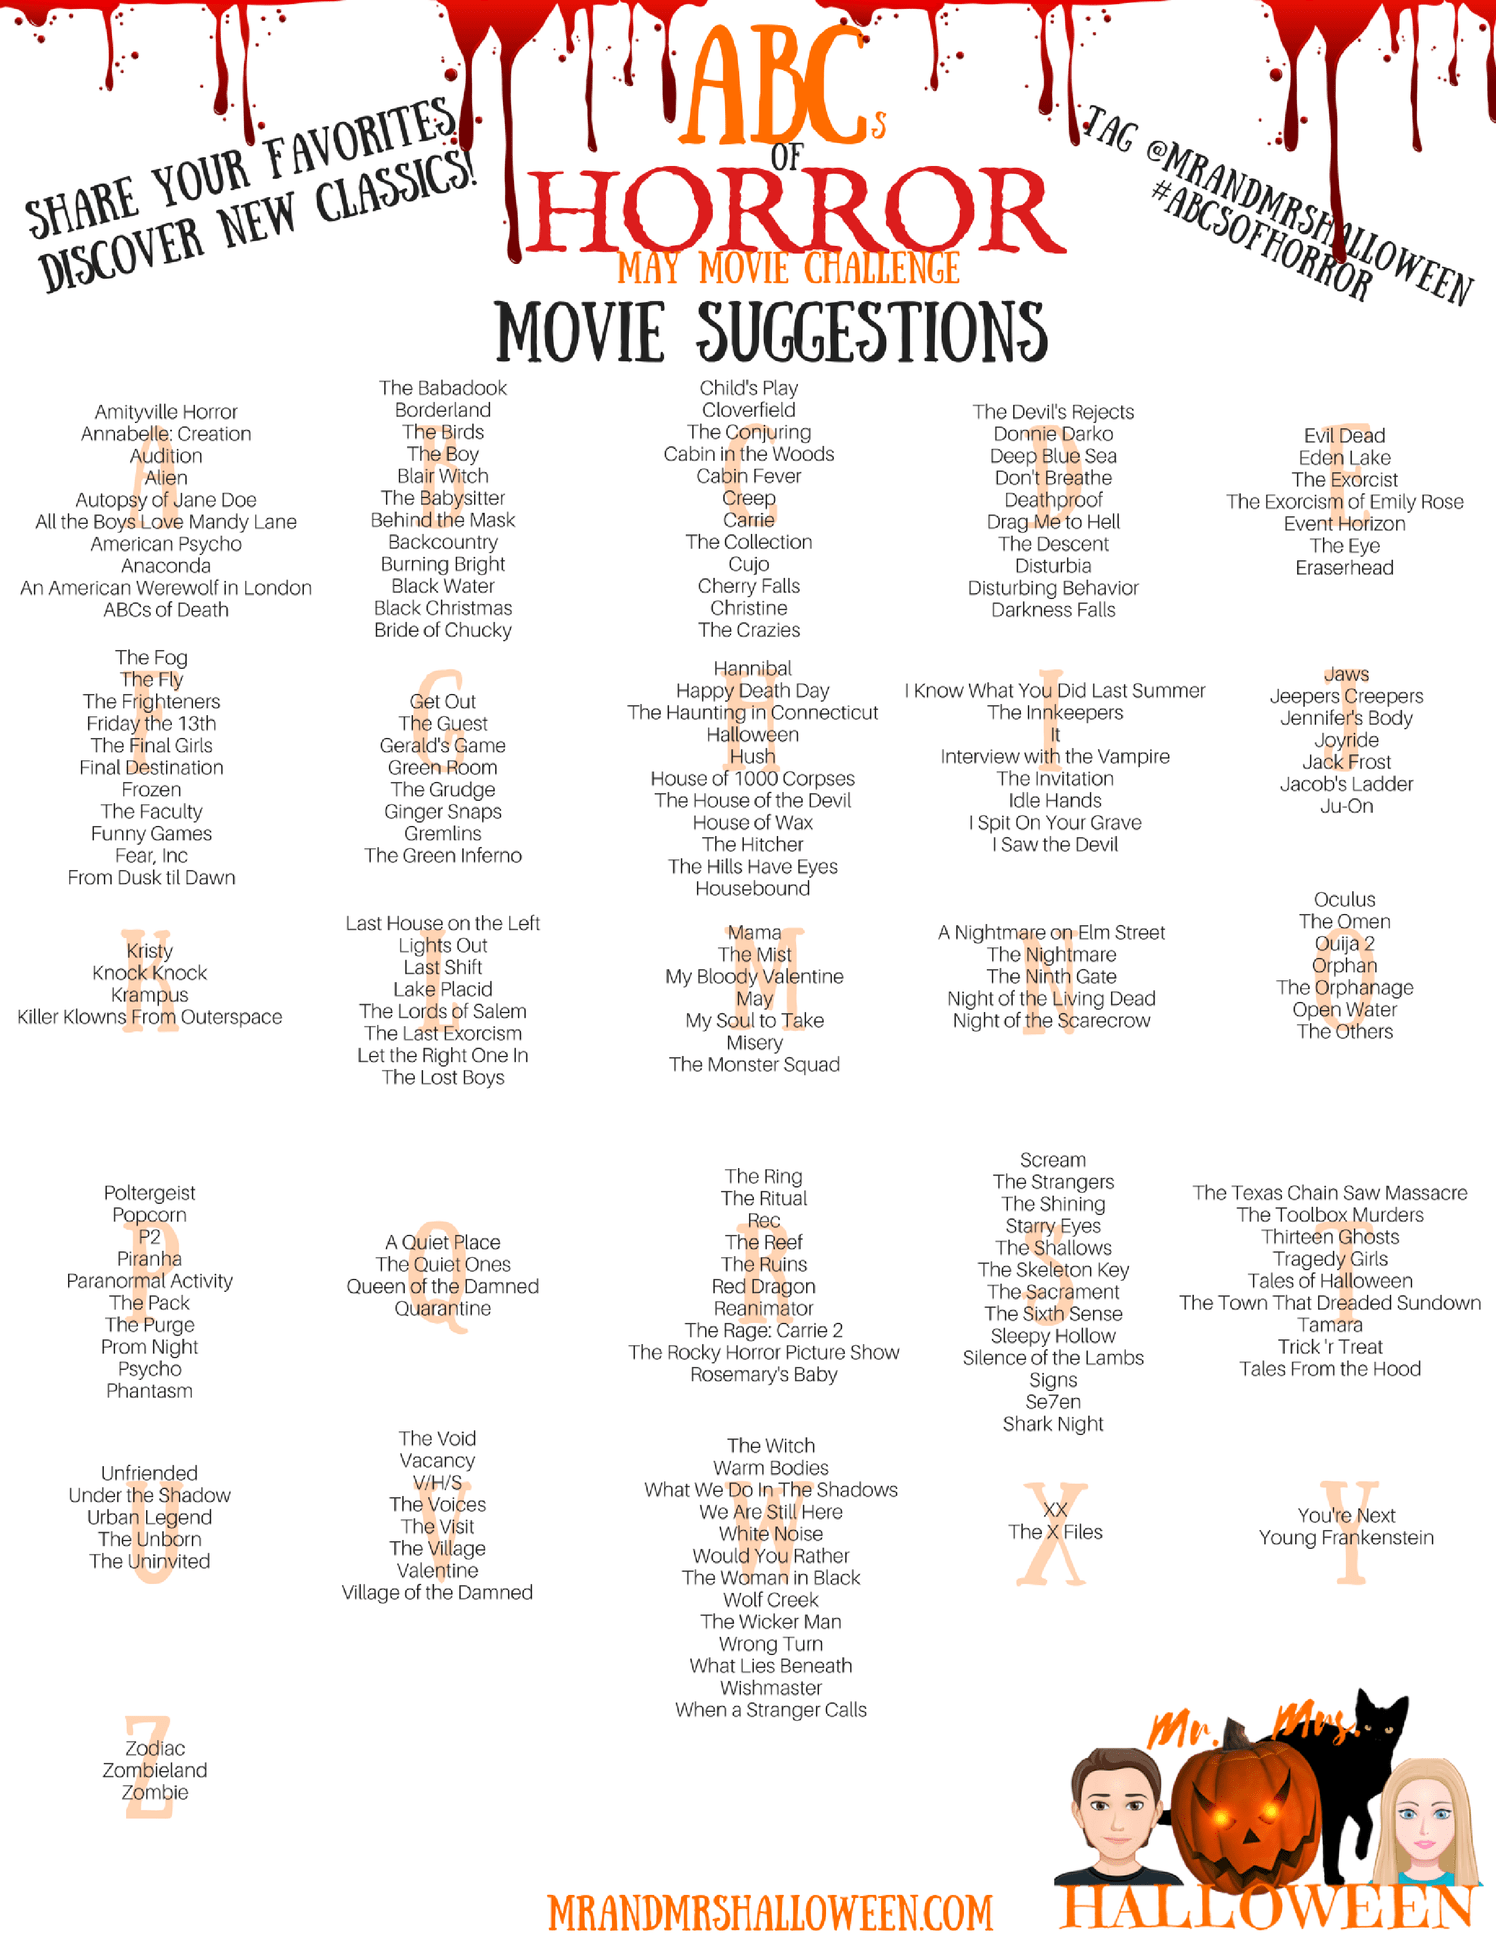 Watch Halloween F 2020 Pin by Mark F. Wiley on Lists in 2020   Halloween horror movies